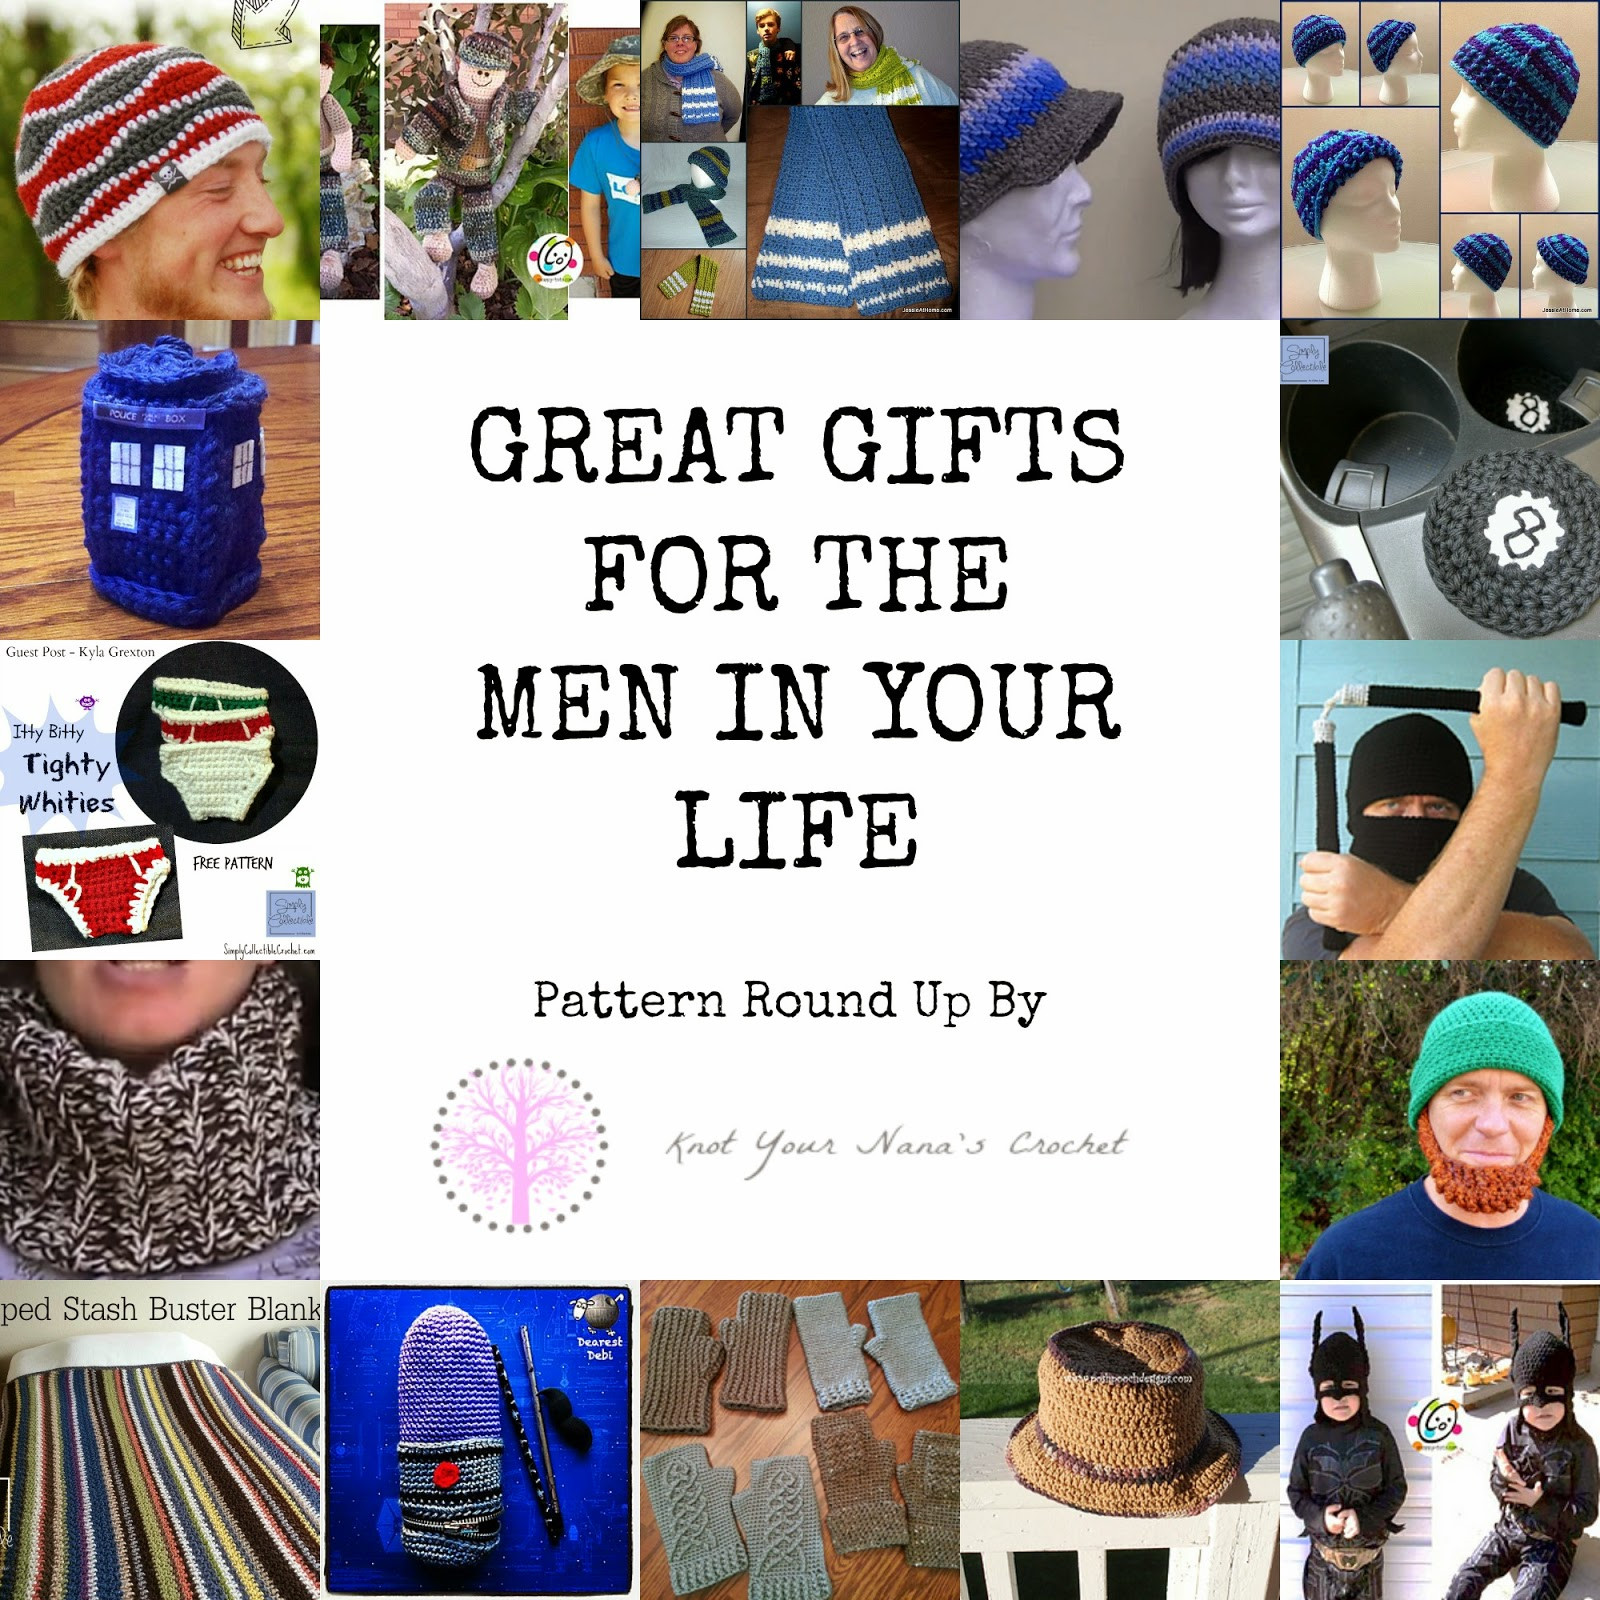 Crochet Gifts for Men Lovely 24 Amazing Crochet Patterns for Men and Boys Of Great 49 Pictures Crochet Gifts for Men